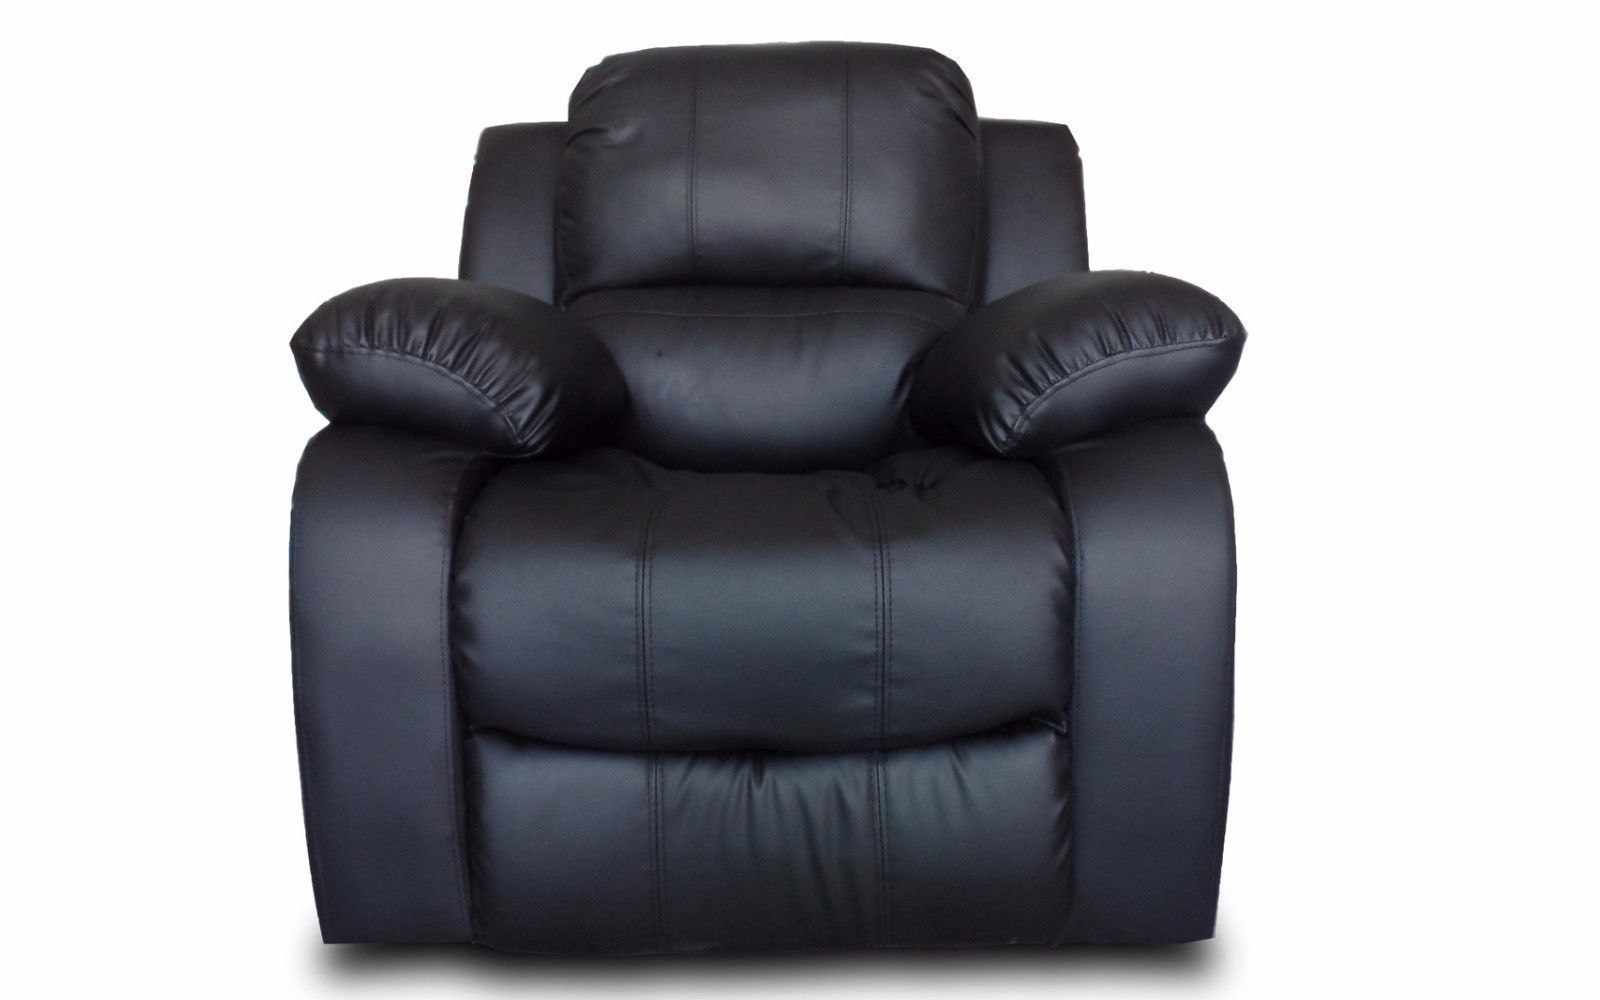 Bob Classic Bonded Leather Recliner Chair Recliner And